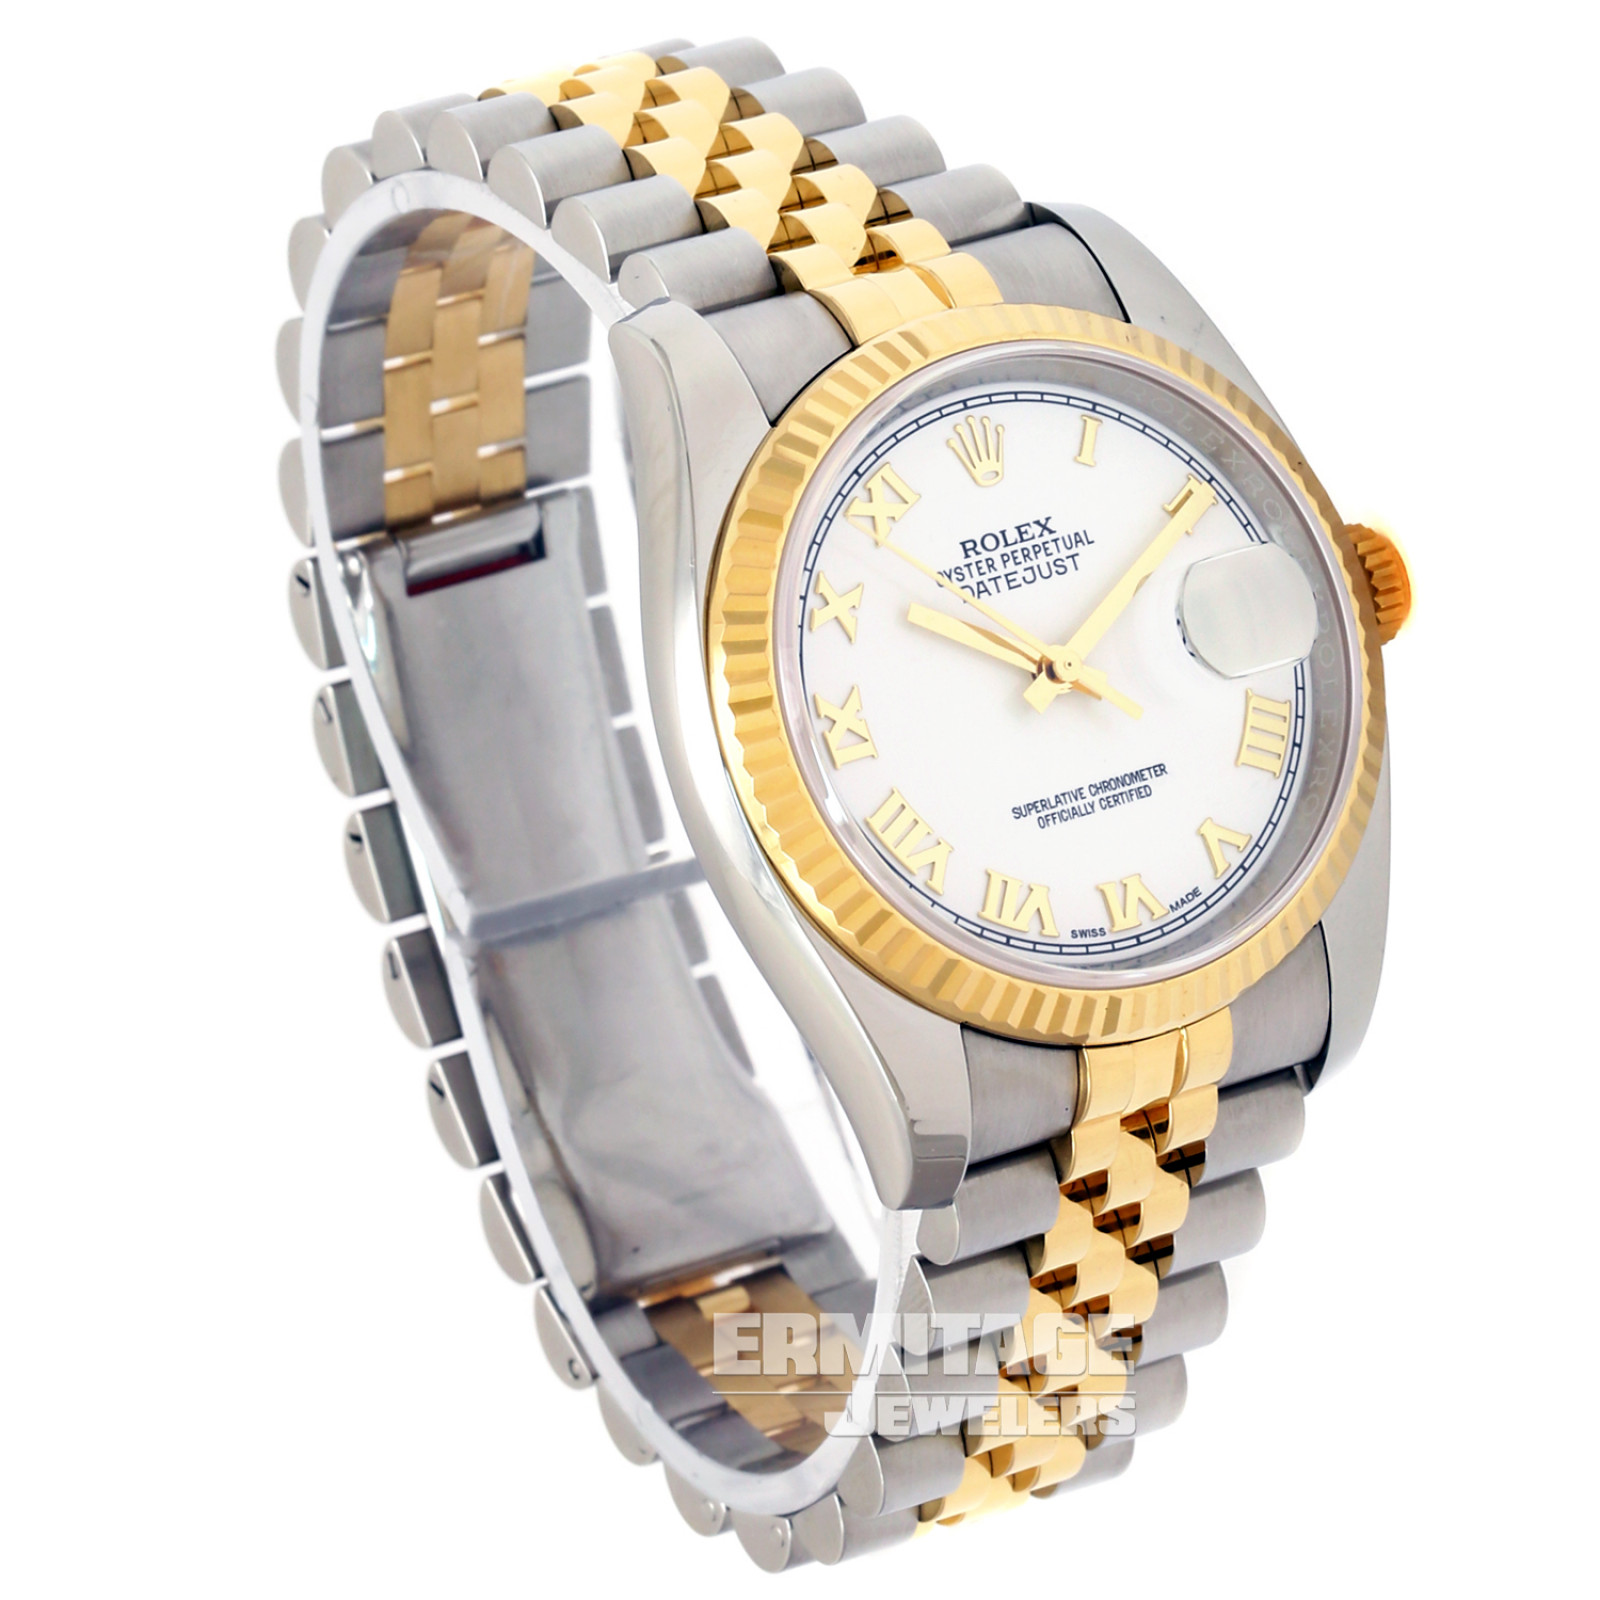 36 mm Rolex Datejust 116233 Gold & Steel on Oyster Pre-Owned